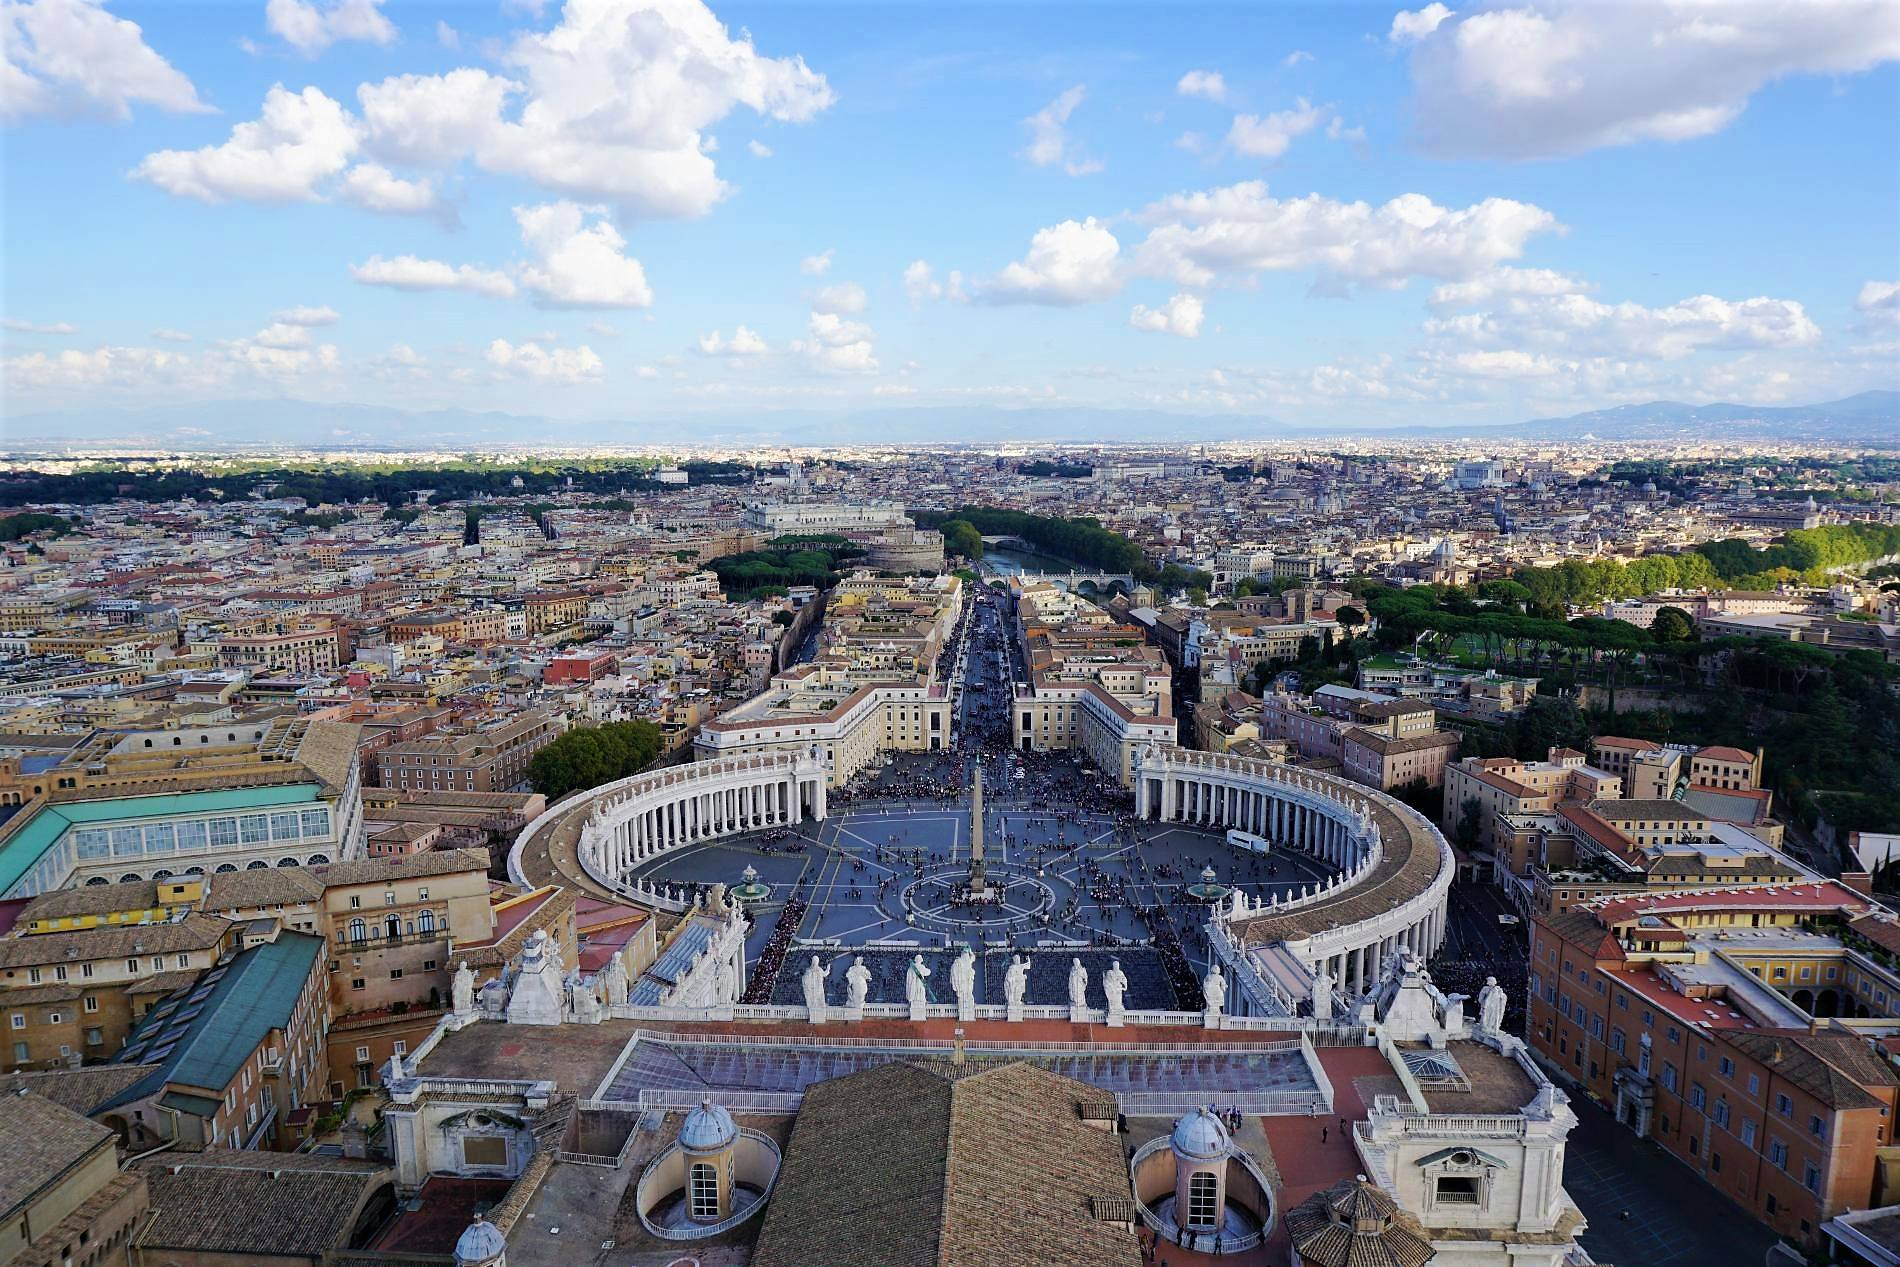 View from Saint Peter's Basilica over the Vatican. Source: Truevoyagers